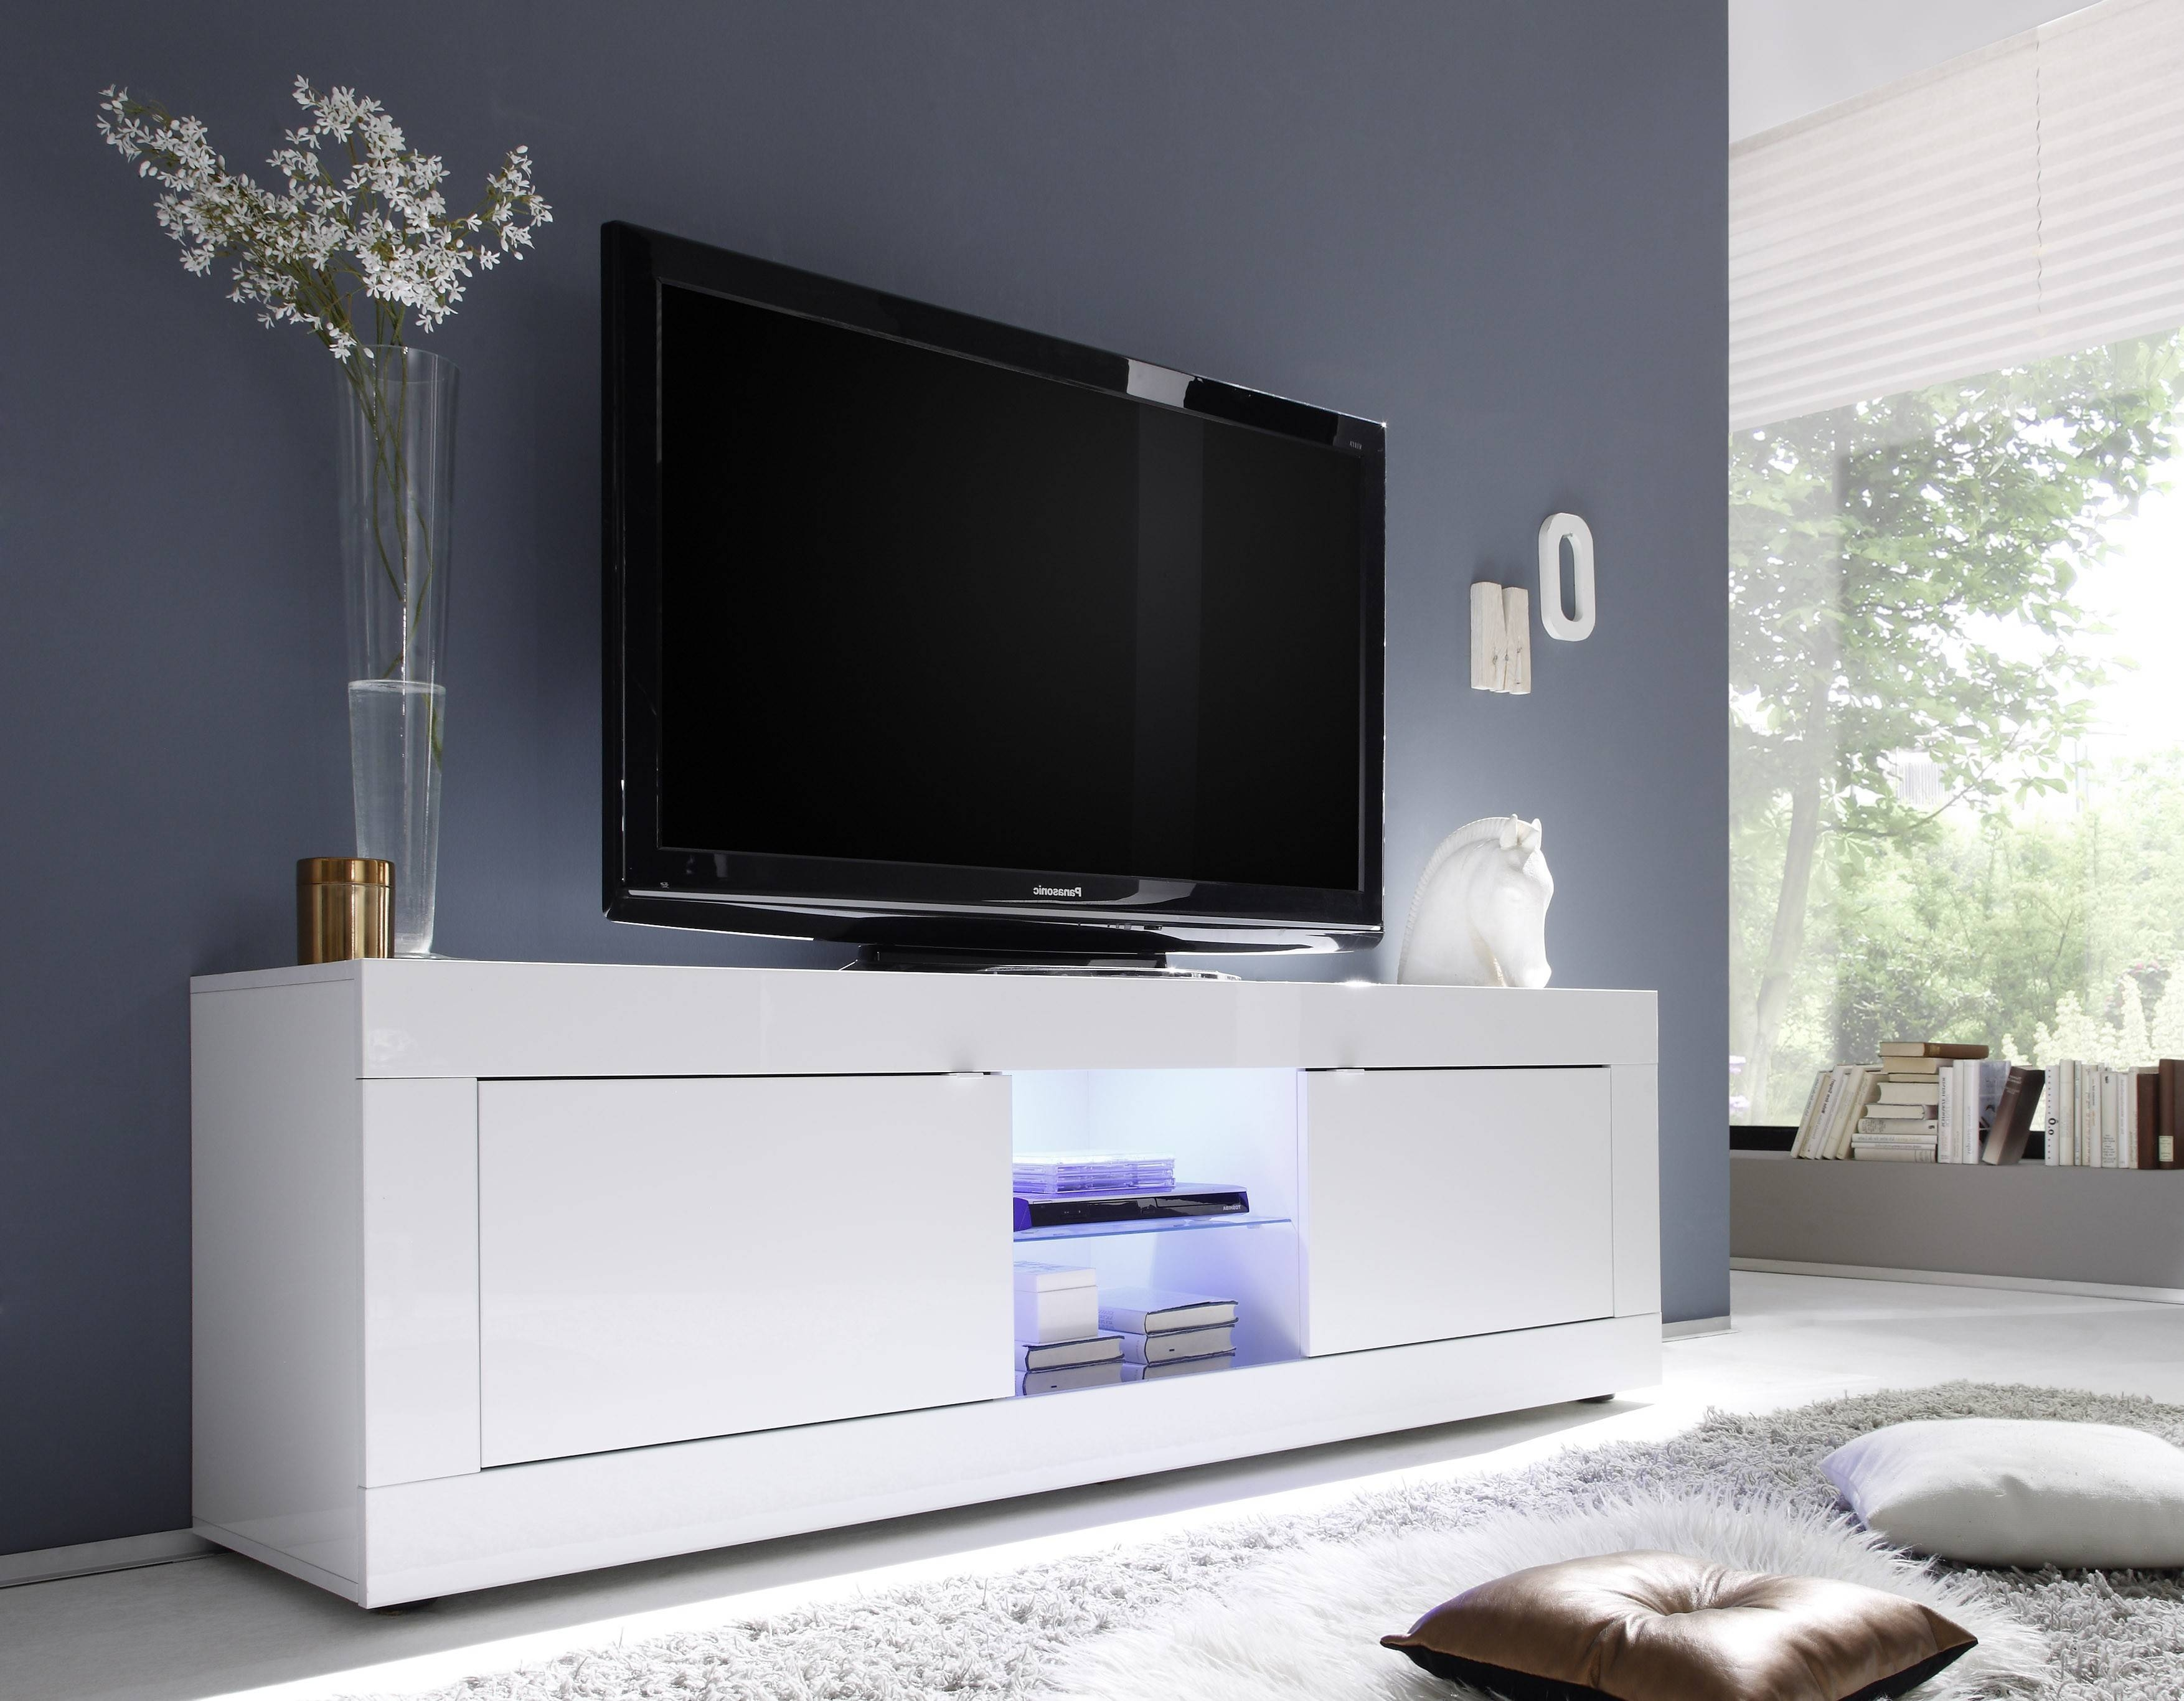 Basic Big Tv Stand, All White Buy Online At Best Price - Sohomod intended for Long White Tv Stands (Image 1 of 15)